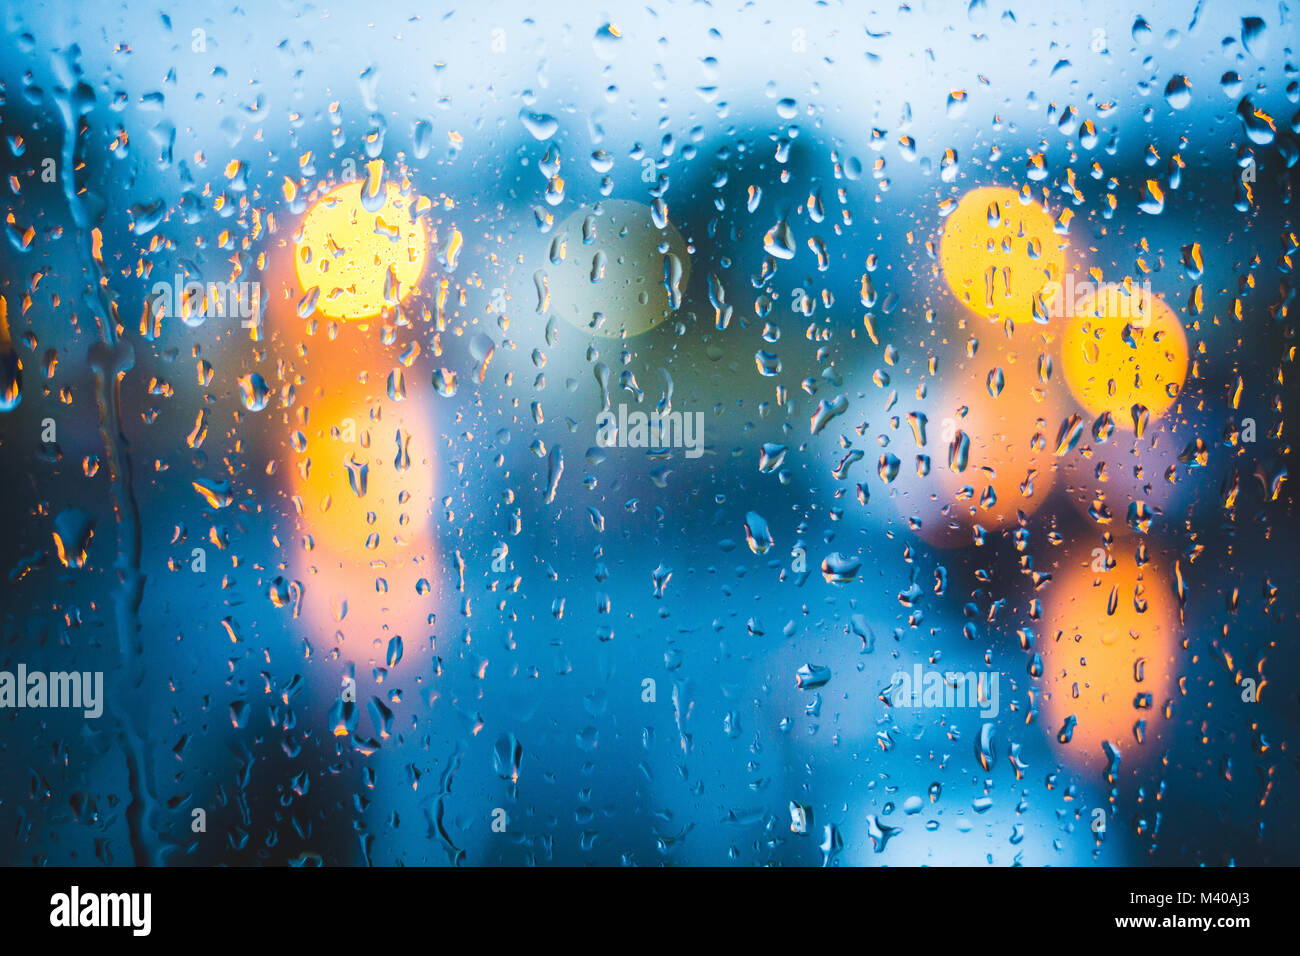 Rain drops on window. Peaceful evening or night at home when raining outside. Water drops on glass. Surface of wet - Stock Image